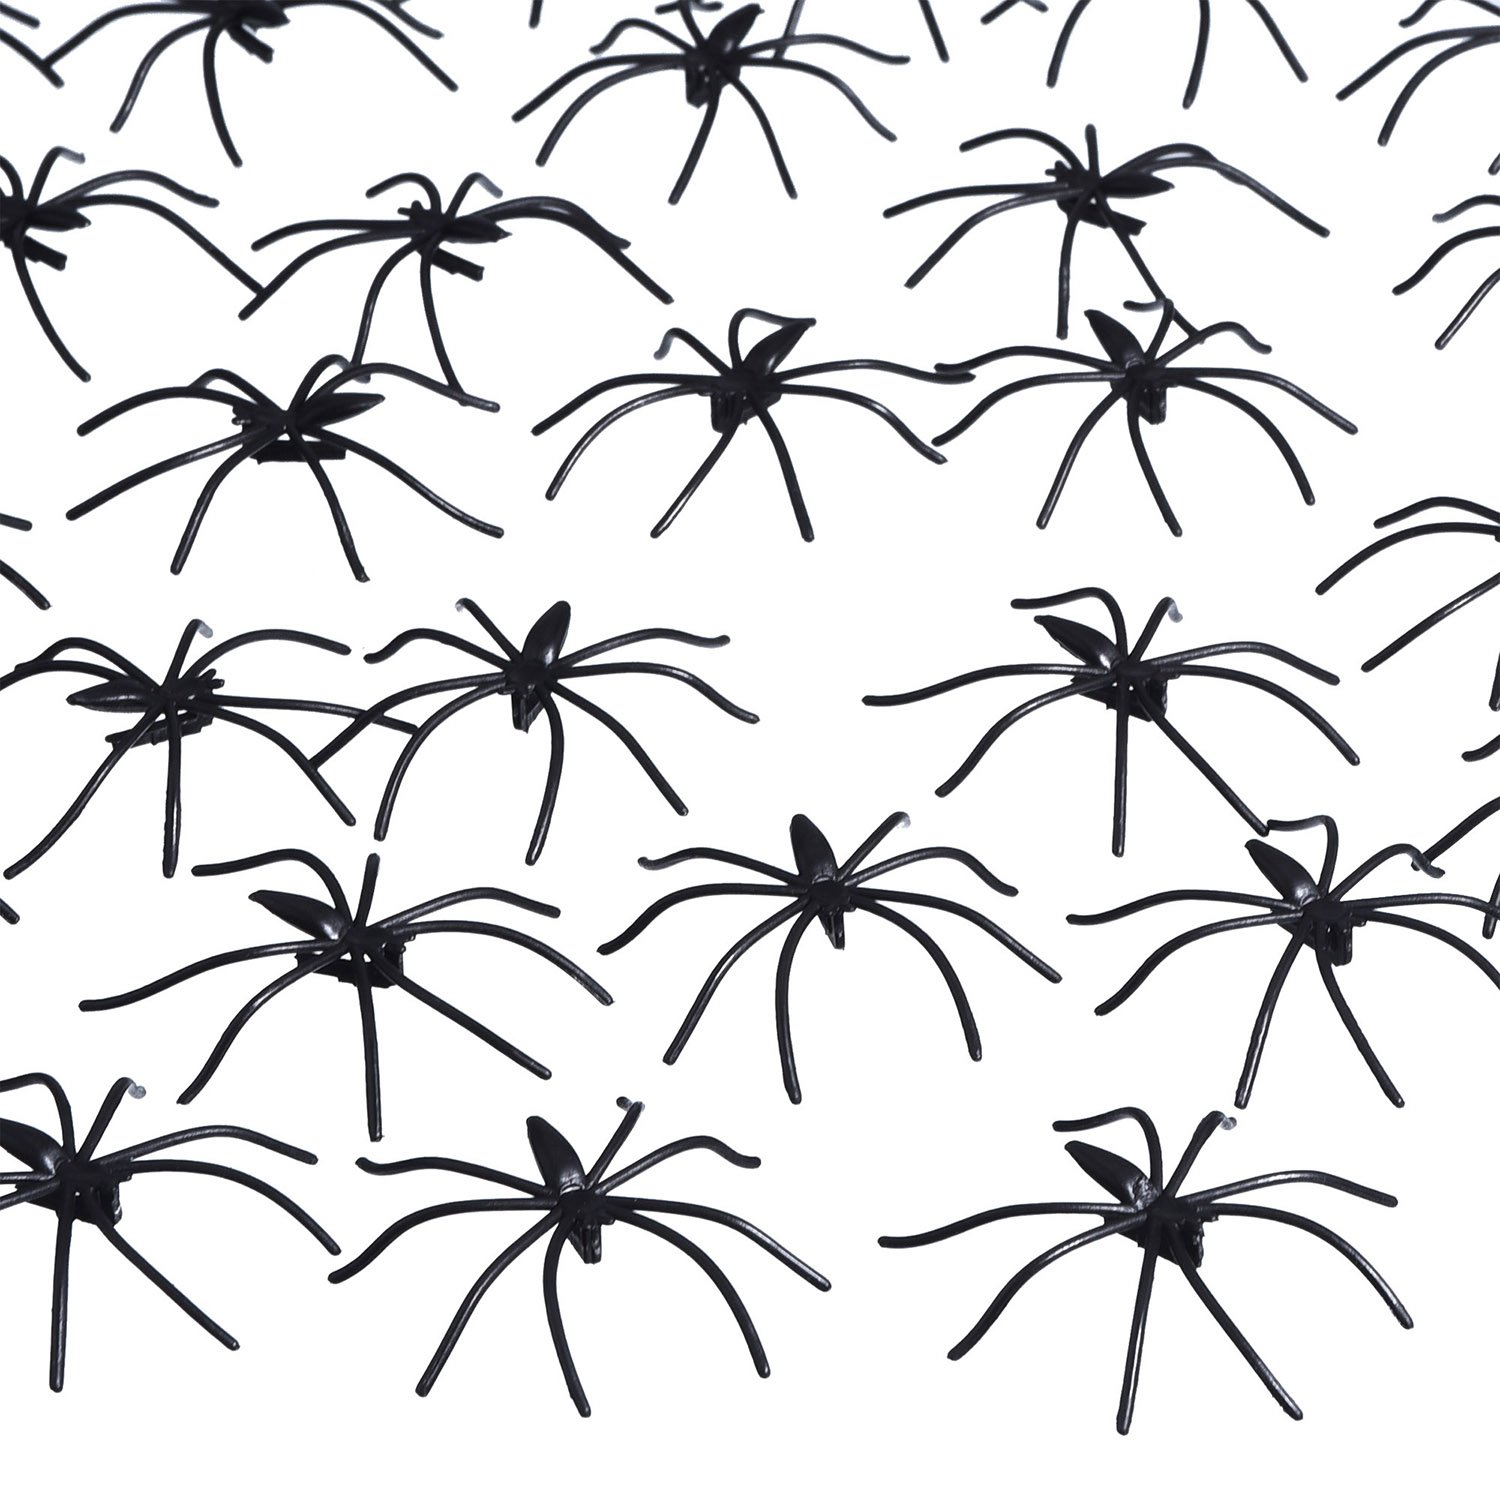 160 Pack Halloween Spiders Black Plastic Spiders for Halloween Decorations, Halloween Party Favours Pangda